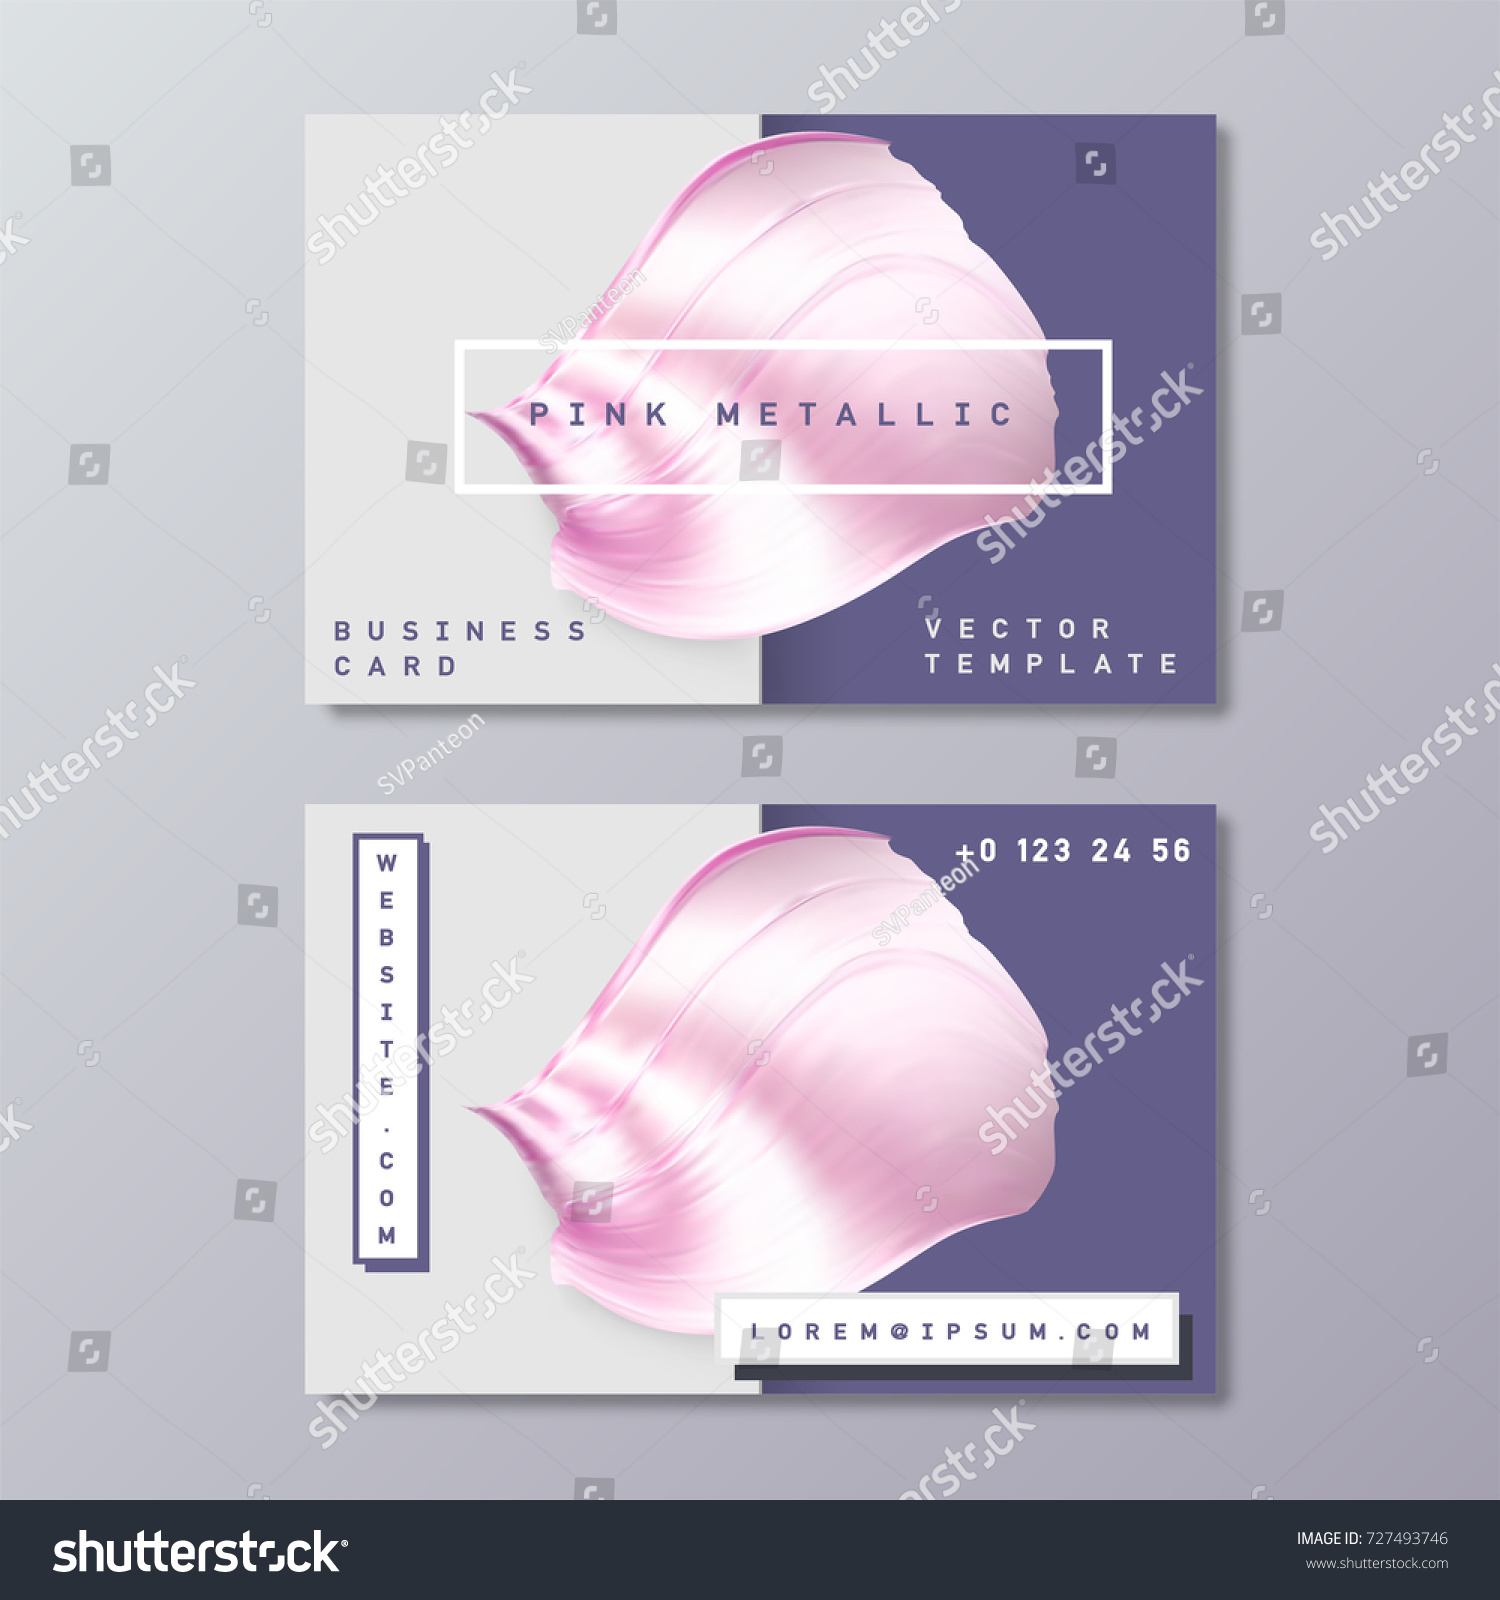 Beautiful Gallery Of 4 Color Business Cards - Business Cards and ...